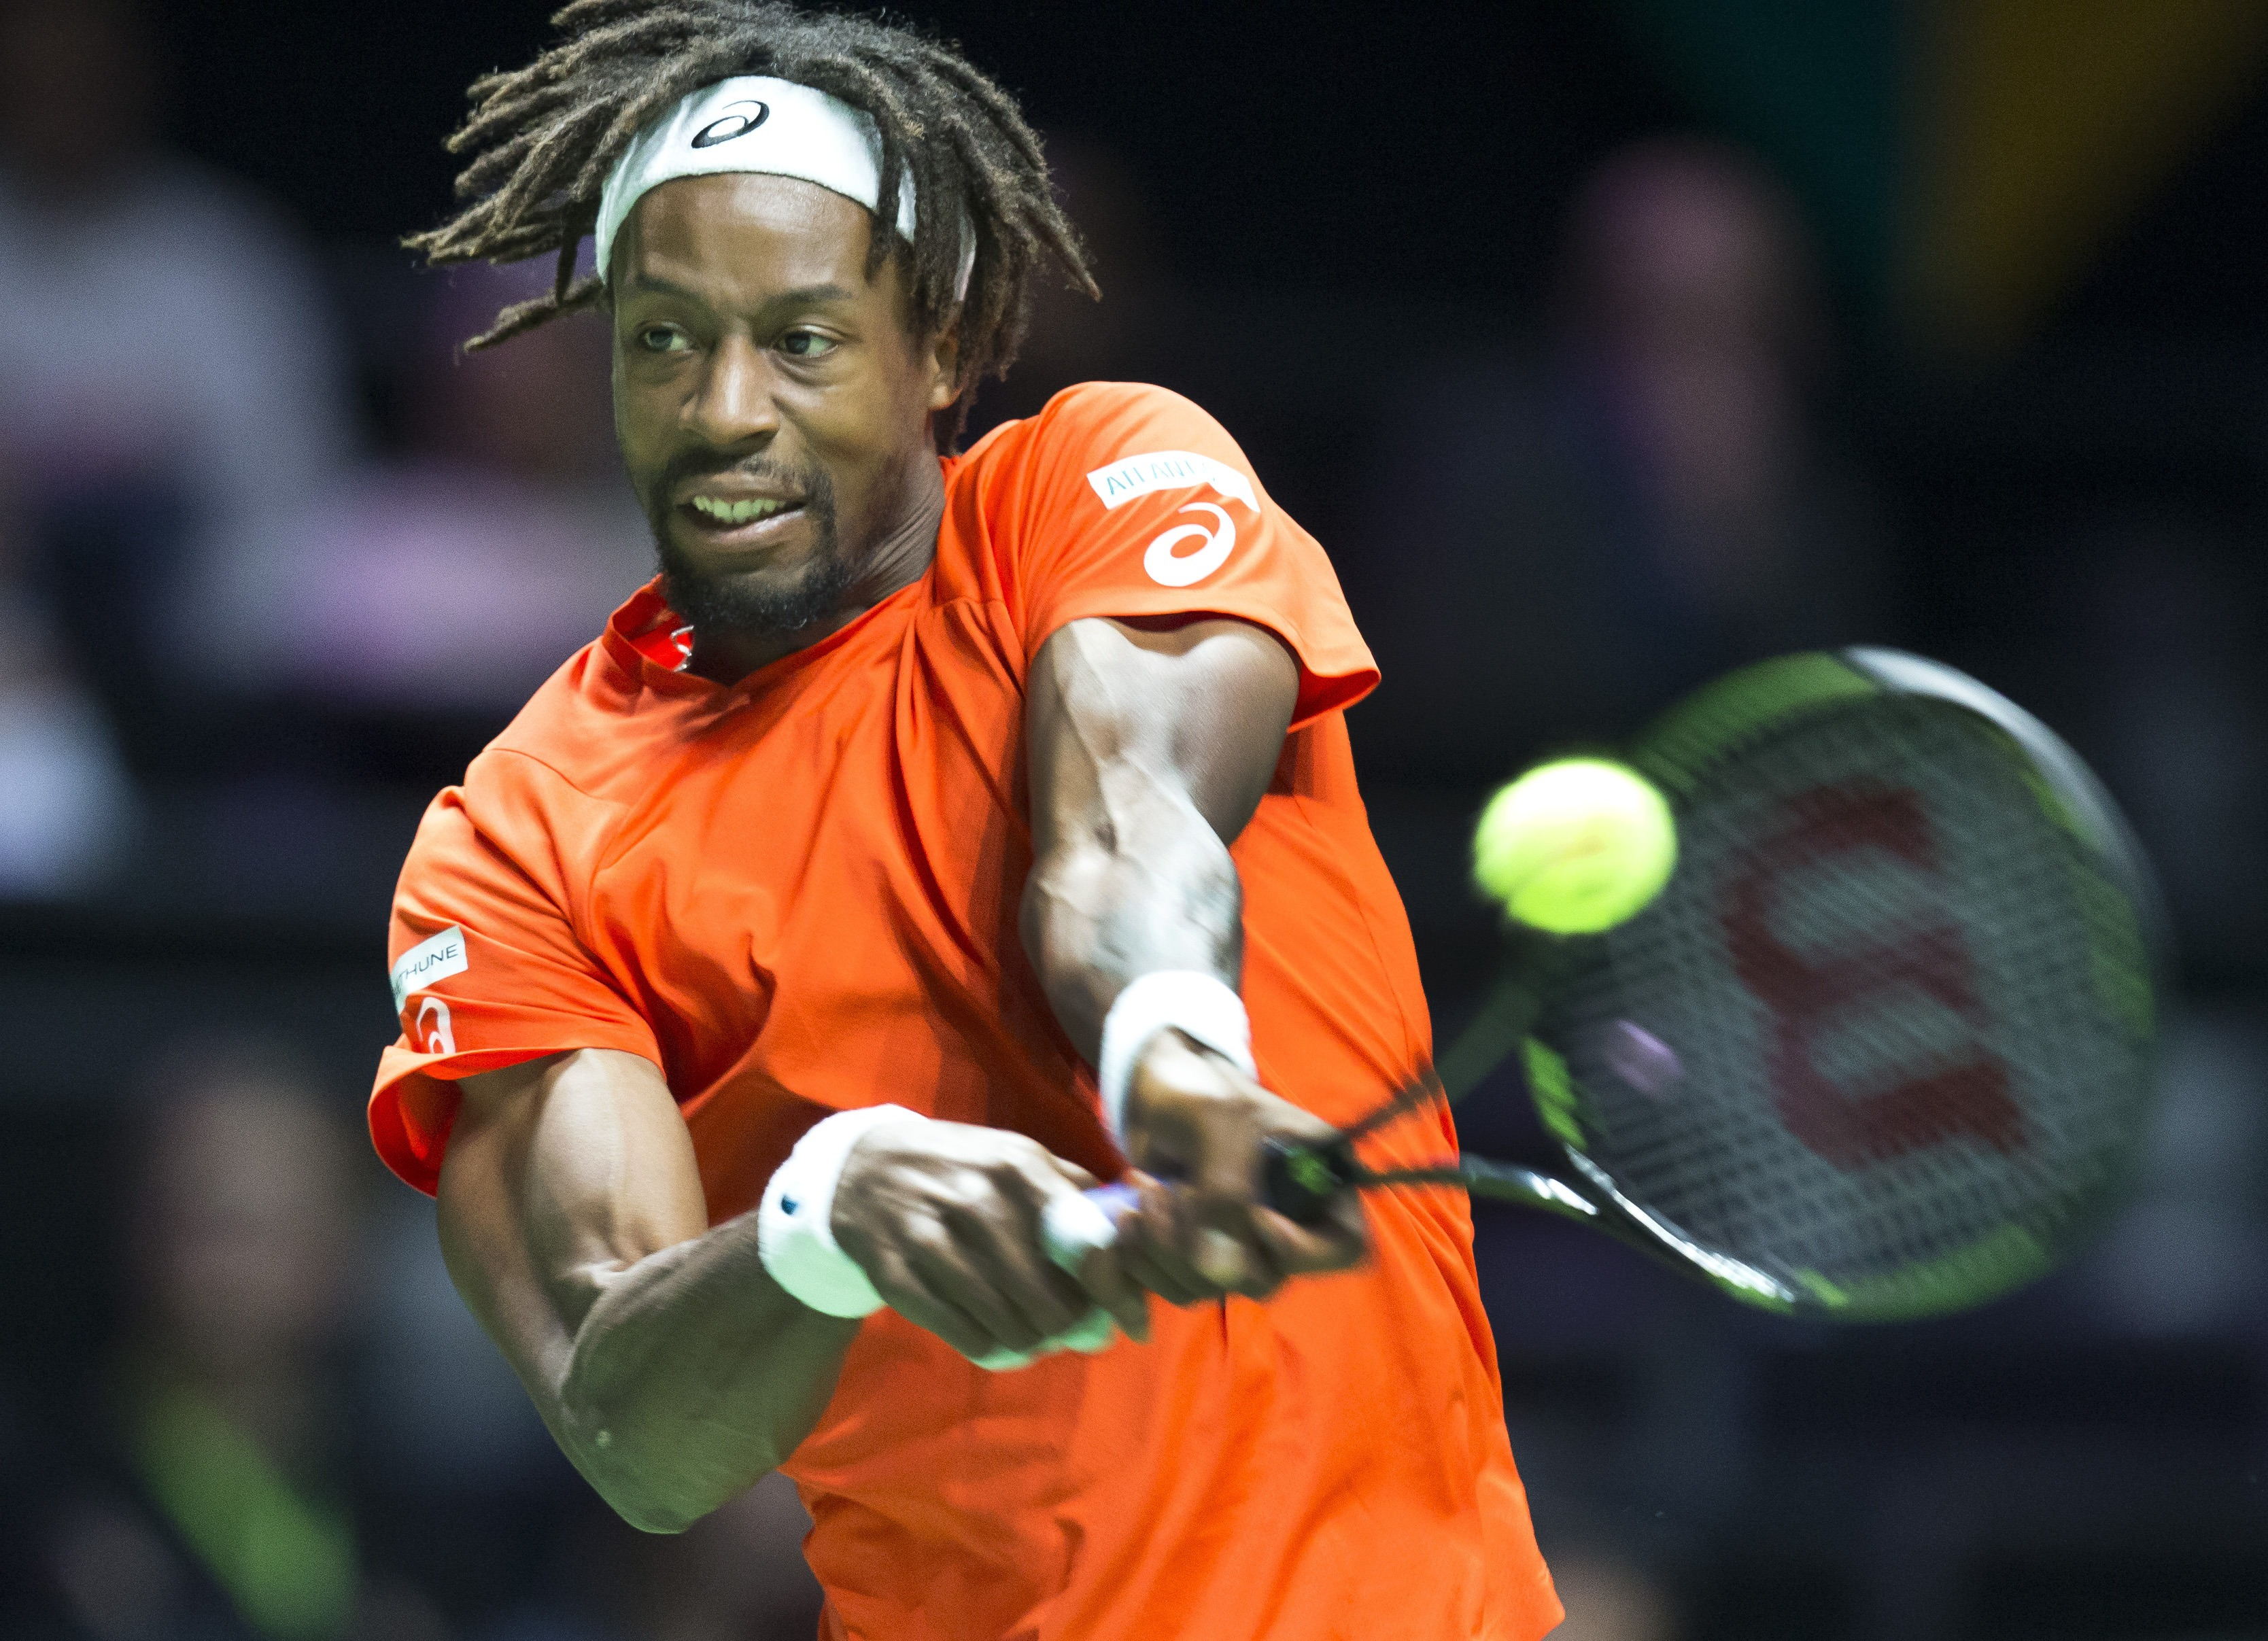 Gael Monfils took down Ernests Gulbis in straight sets. Photo: Getty Images